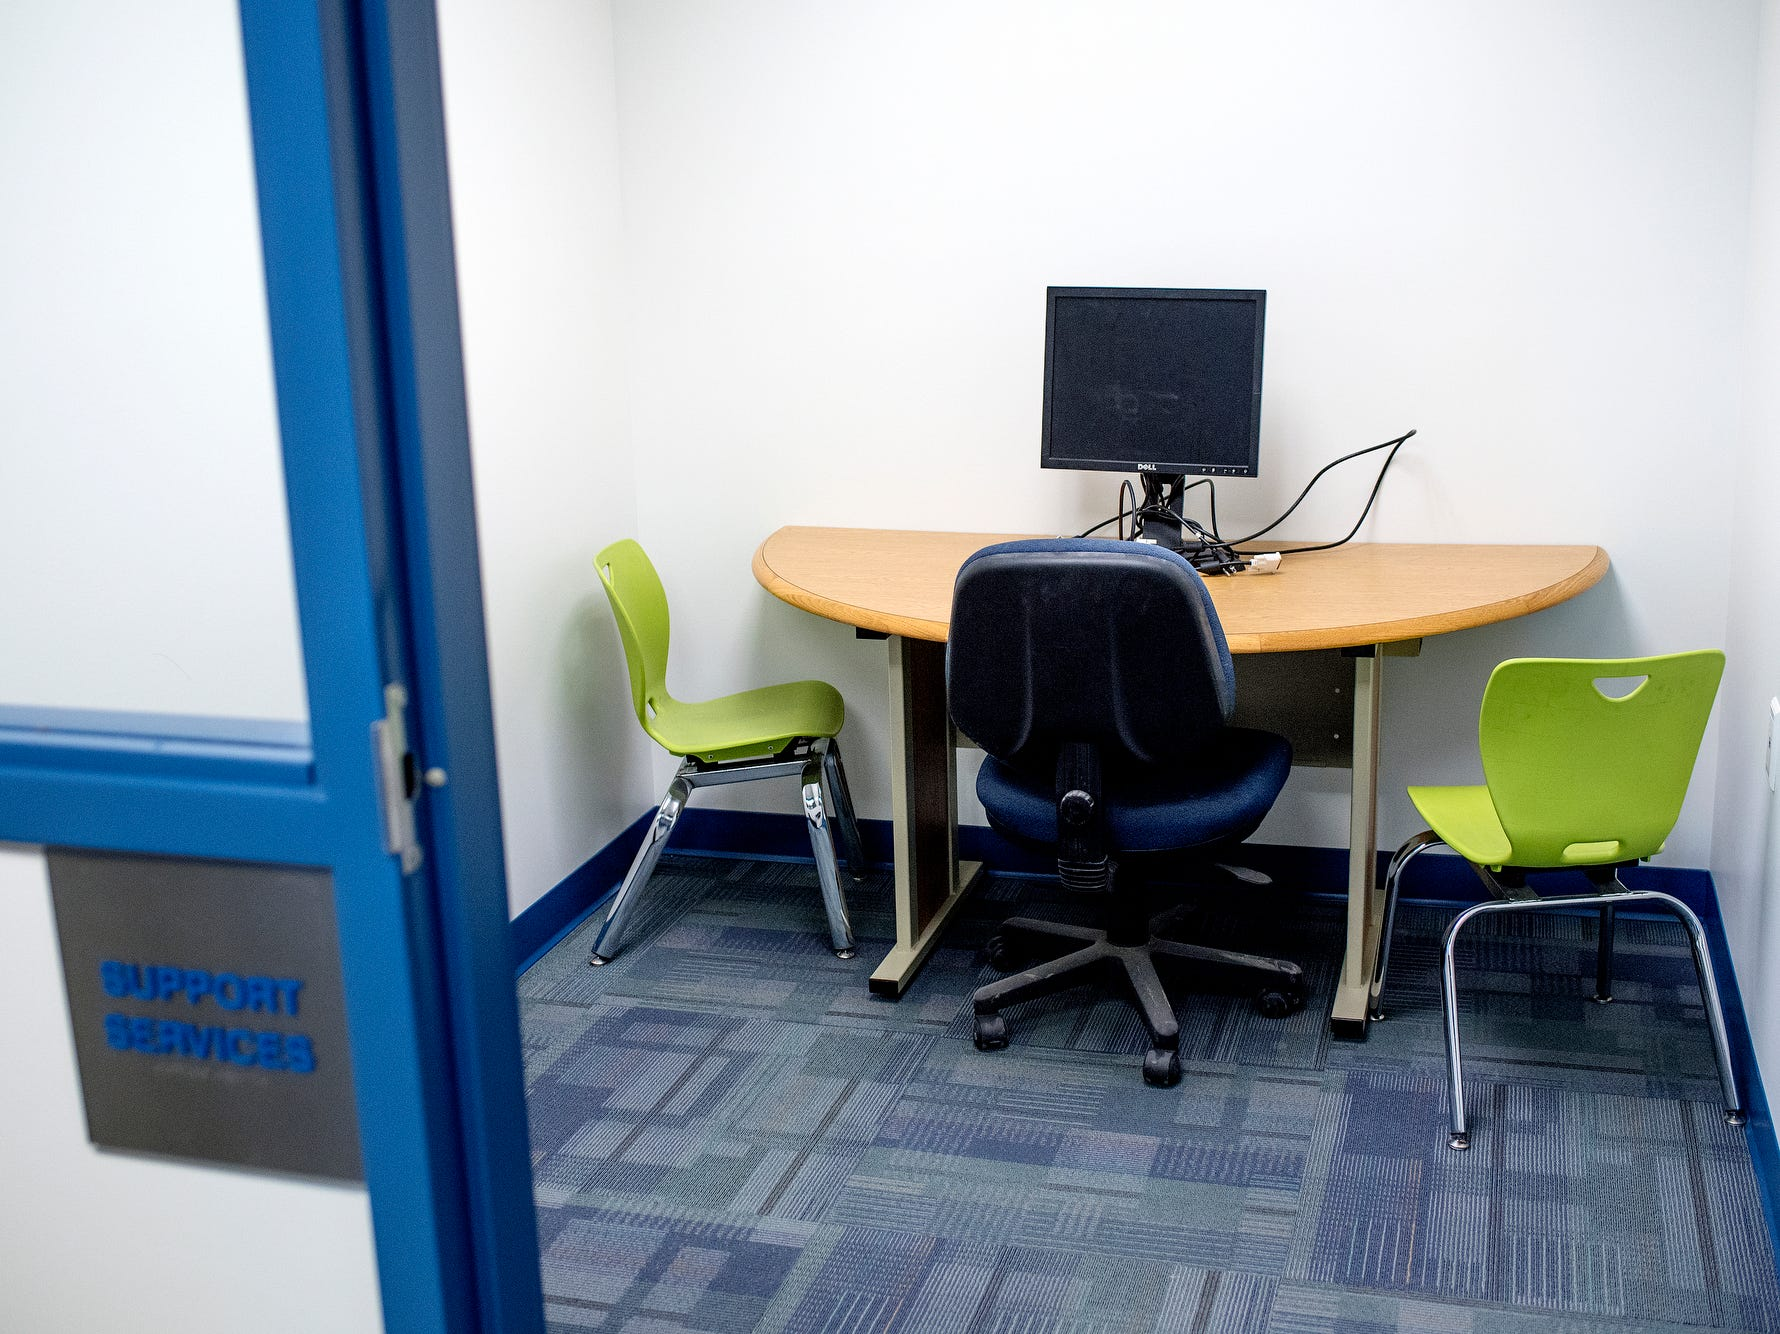 A support services room photographed on Wednesday, Aug. 1, 2018, at Cole Academy's East Lansing campus. The school, Cole Academy's second campus, is opening this fall.